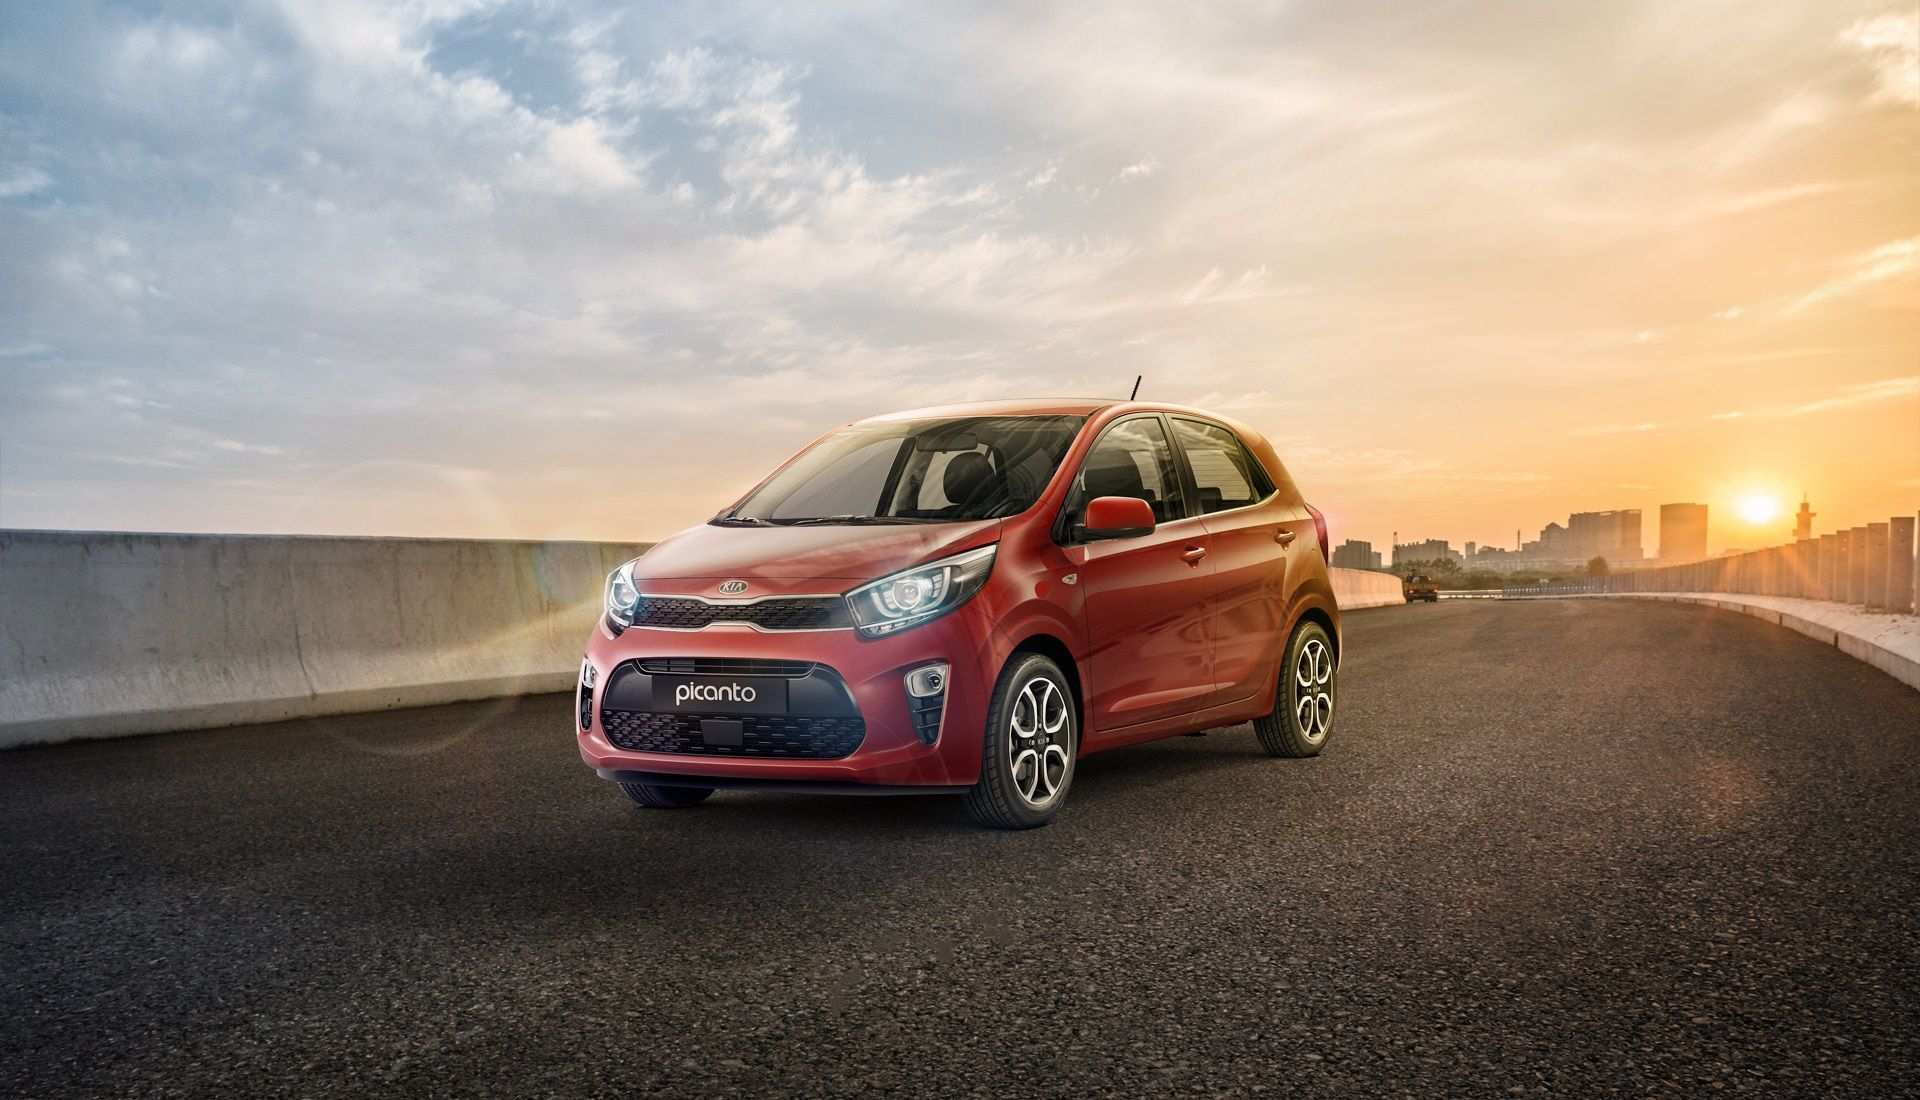 41 All New 2020 Kia Picanto Egypt Exterior